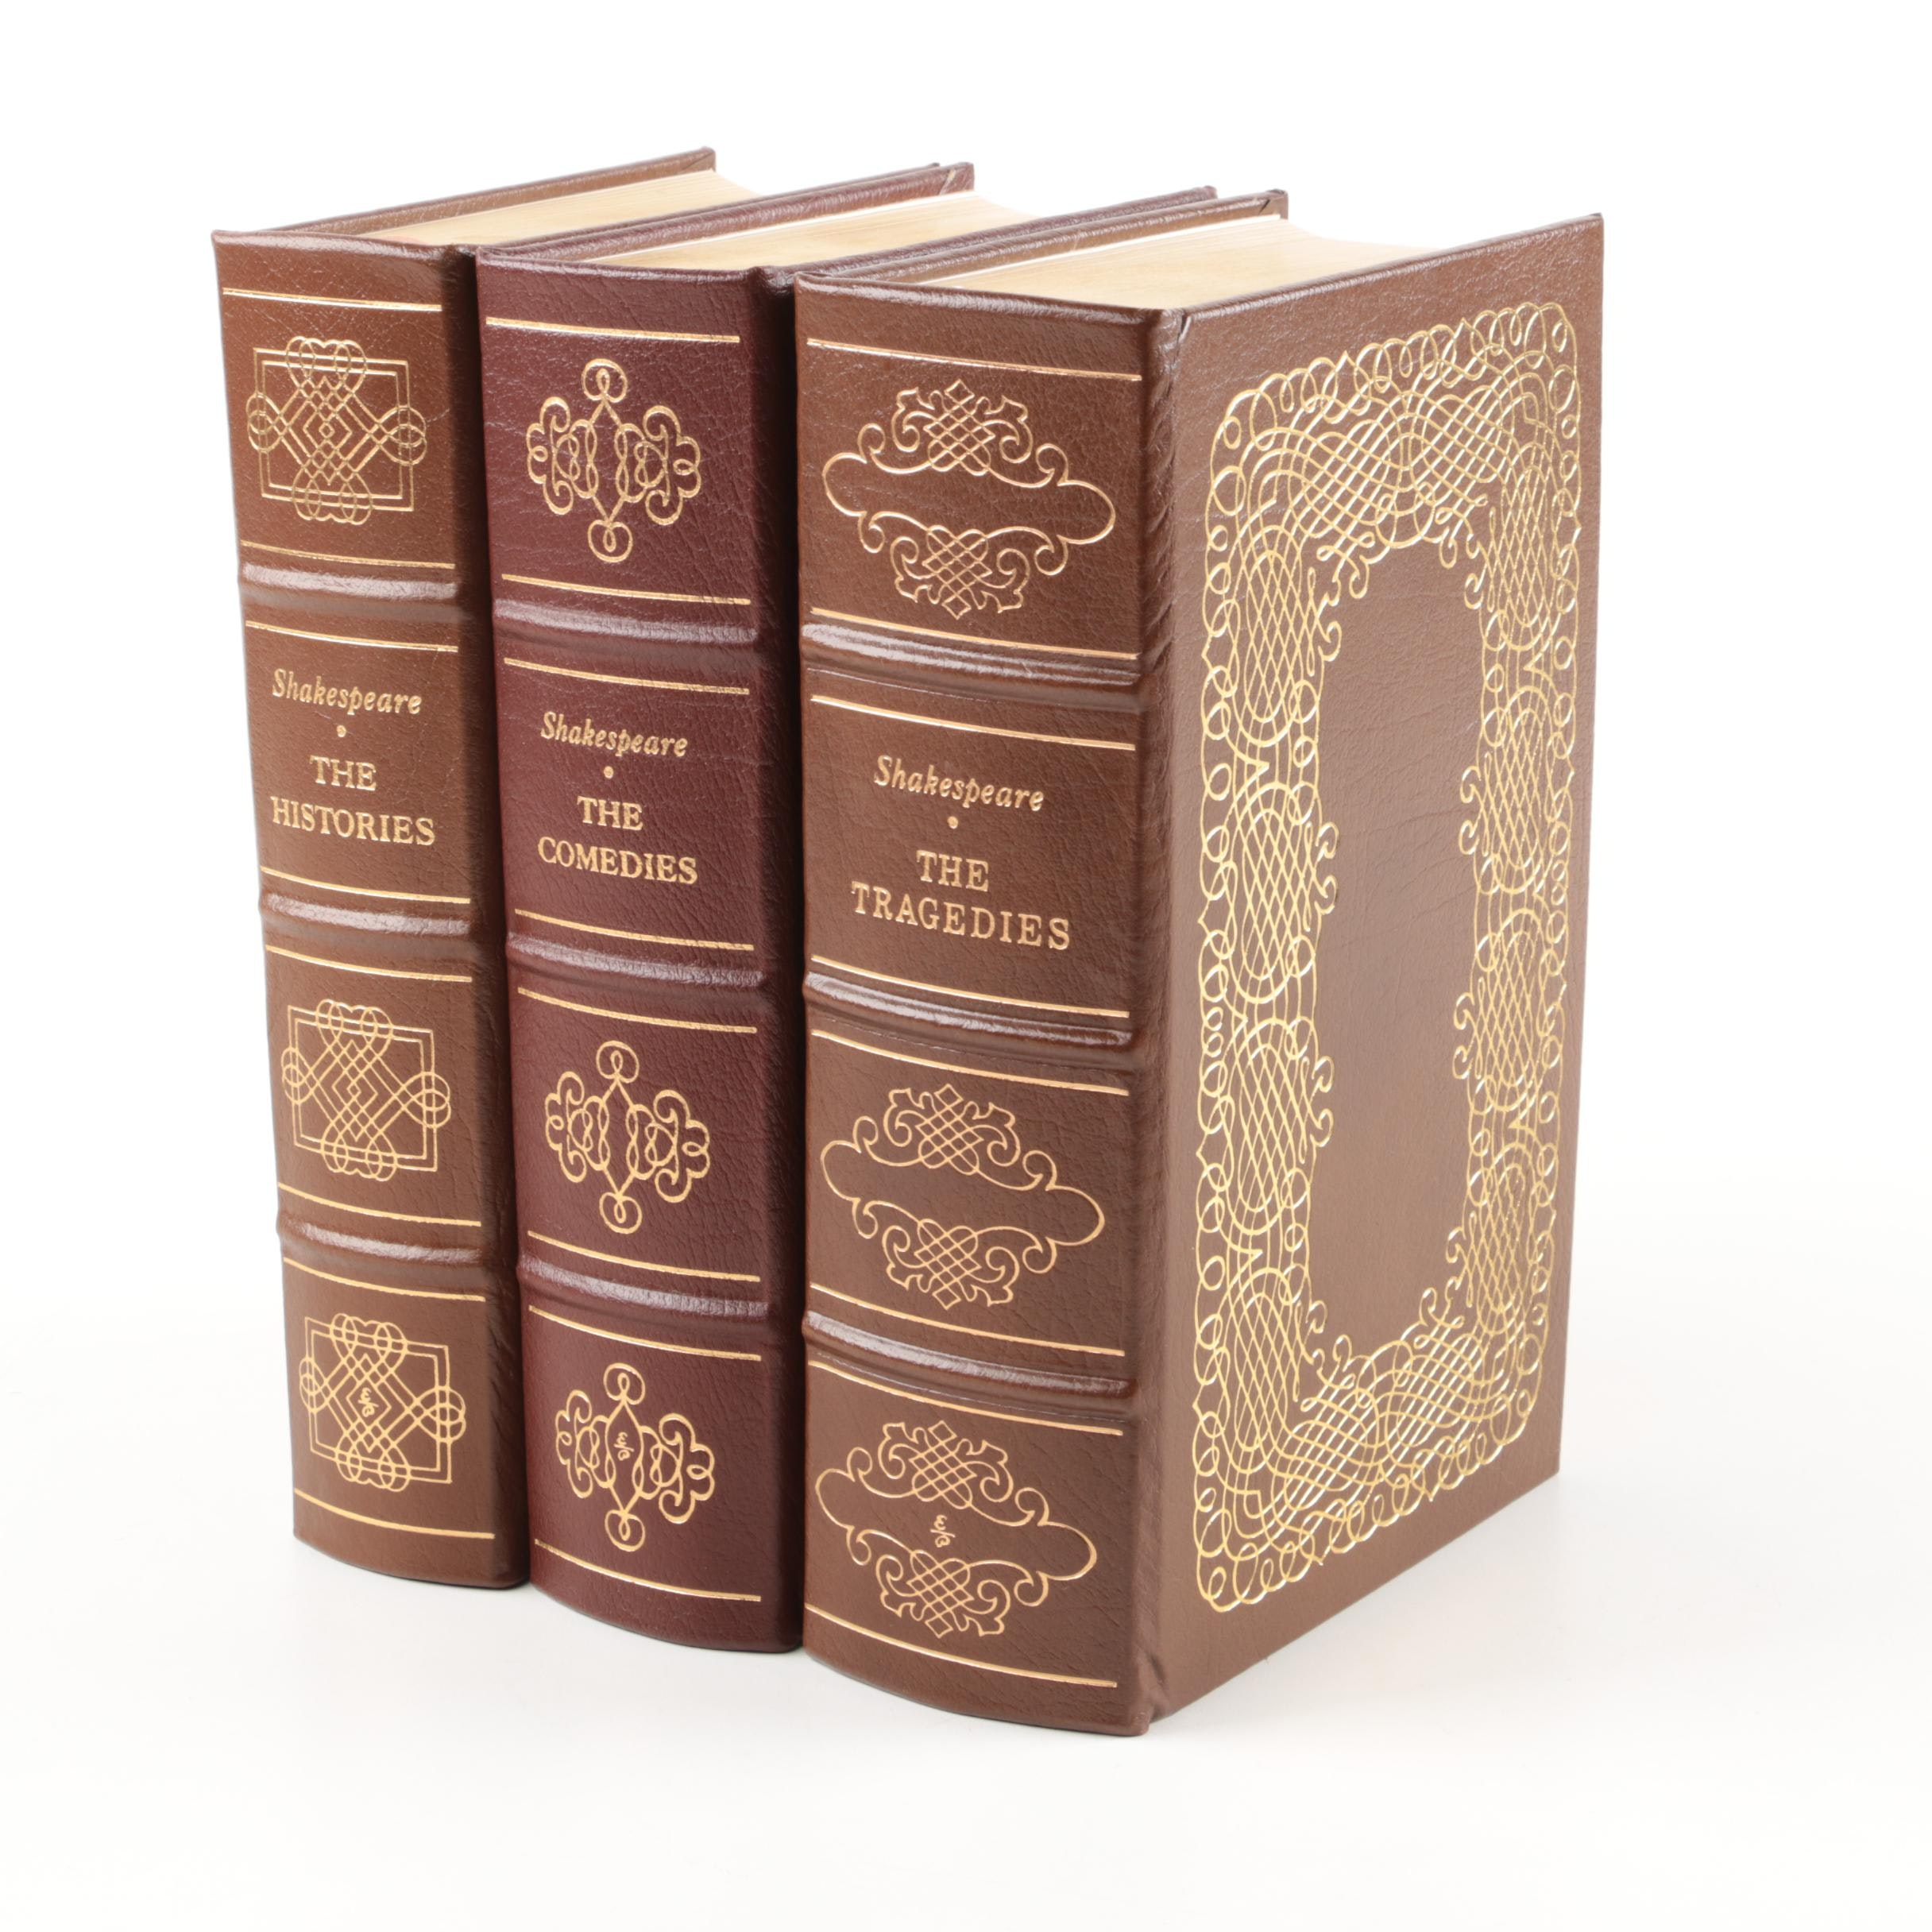 Easton Press Edition William Shakespeare Plays